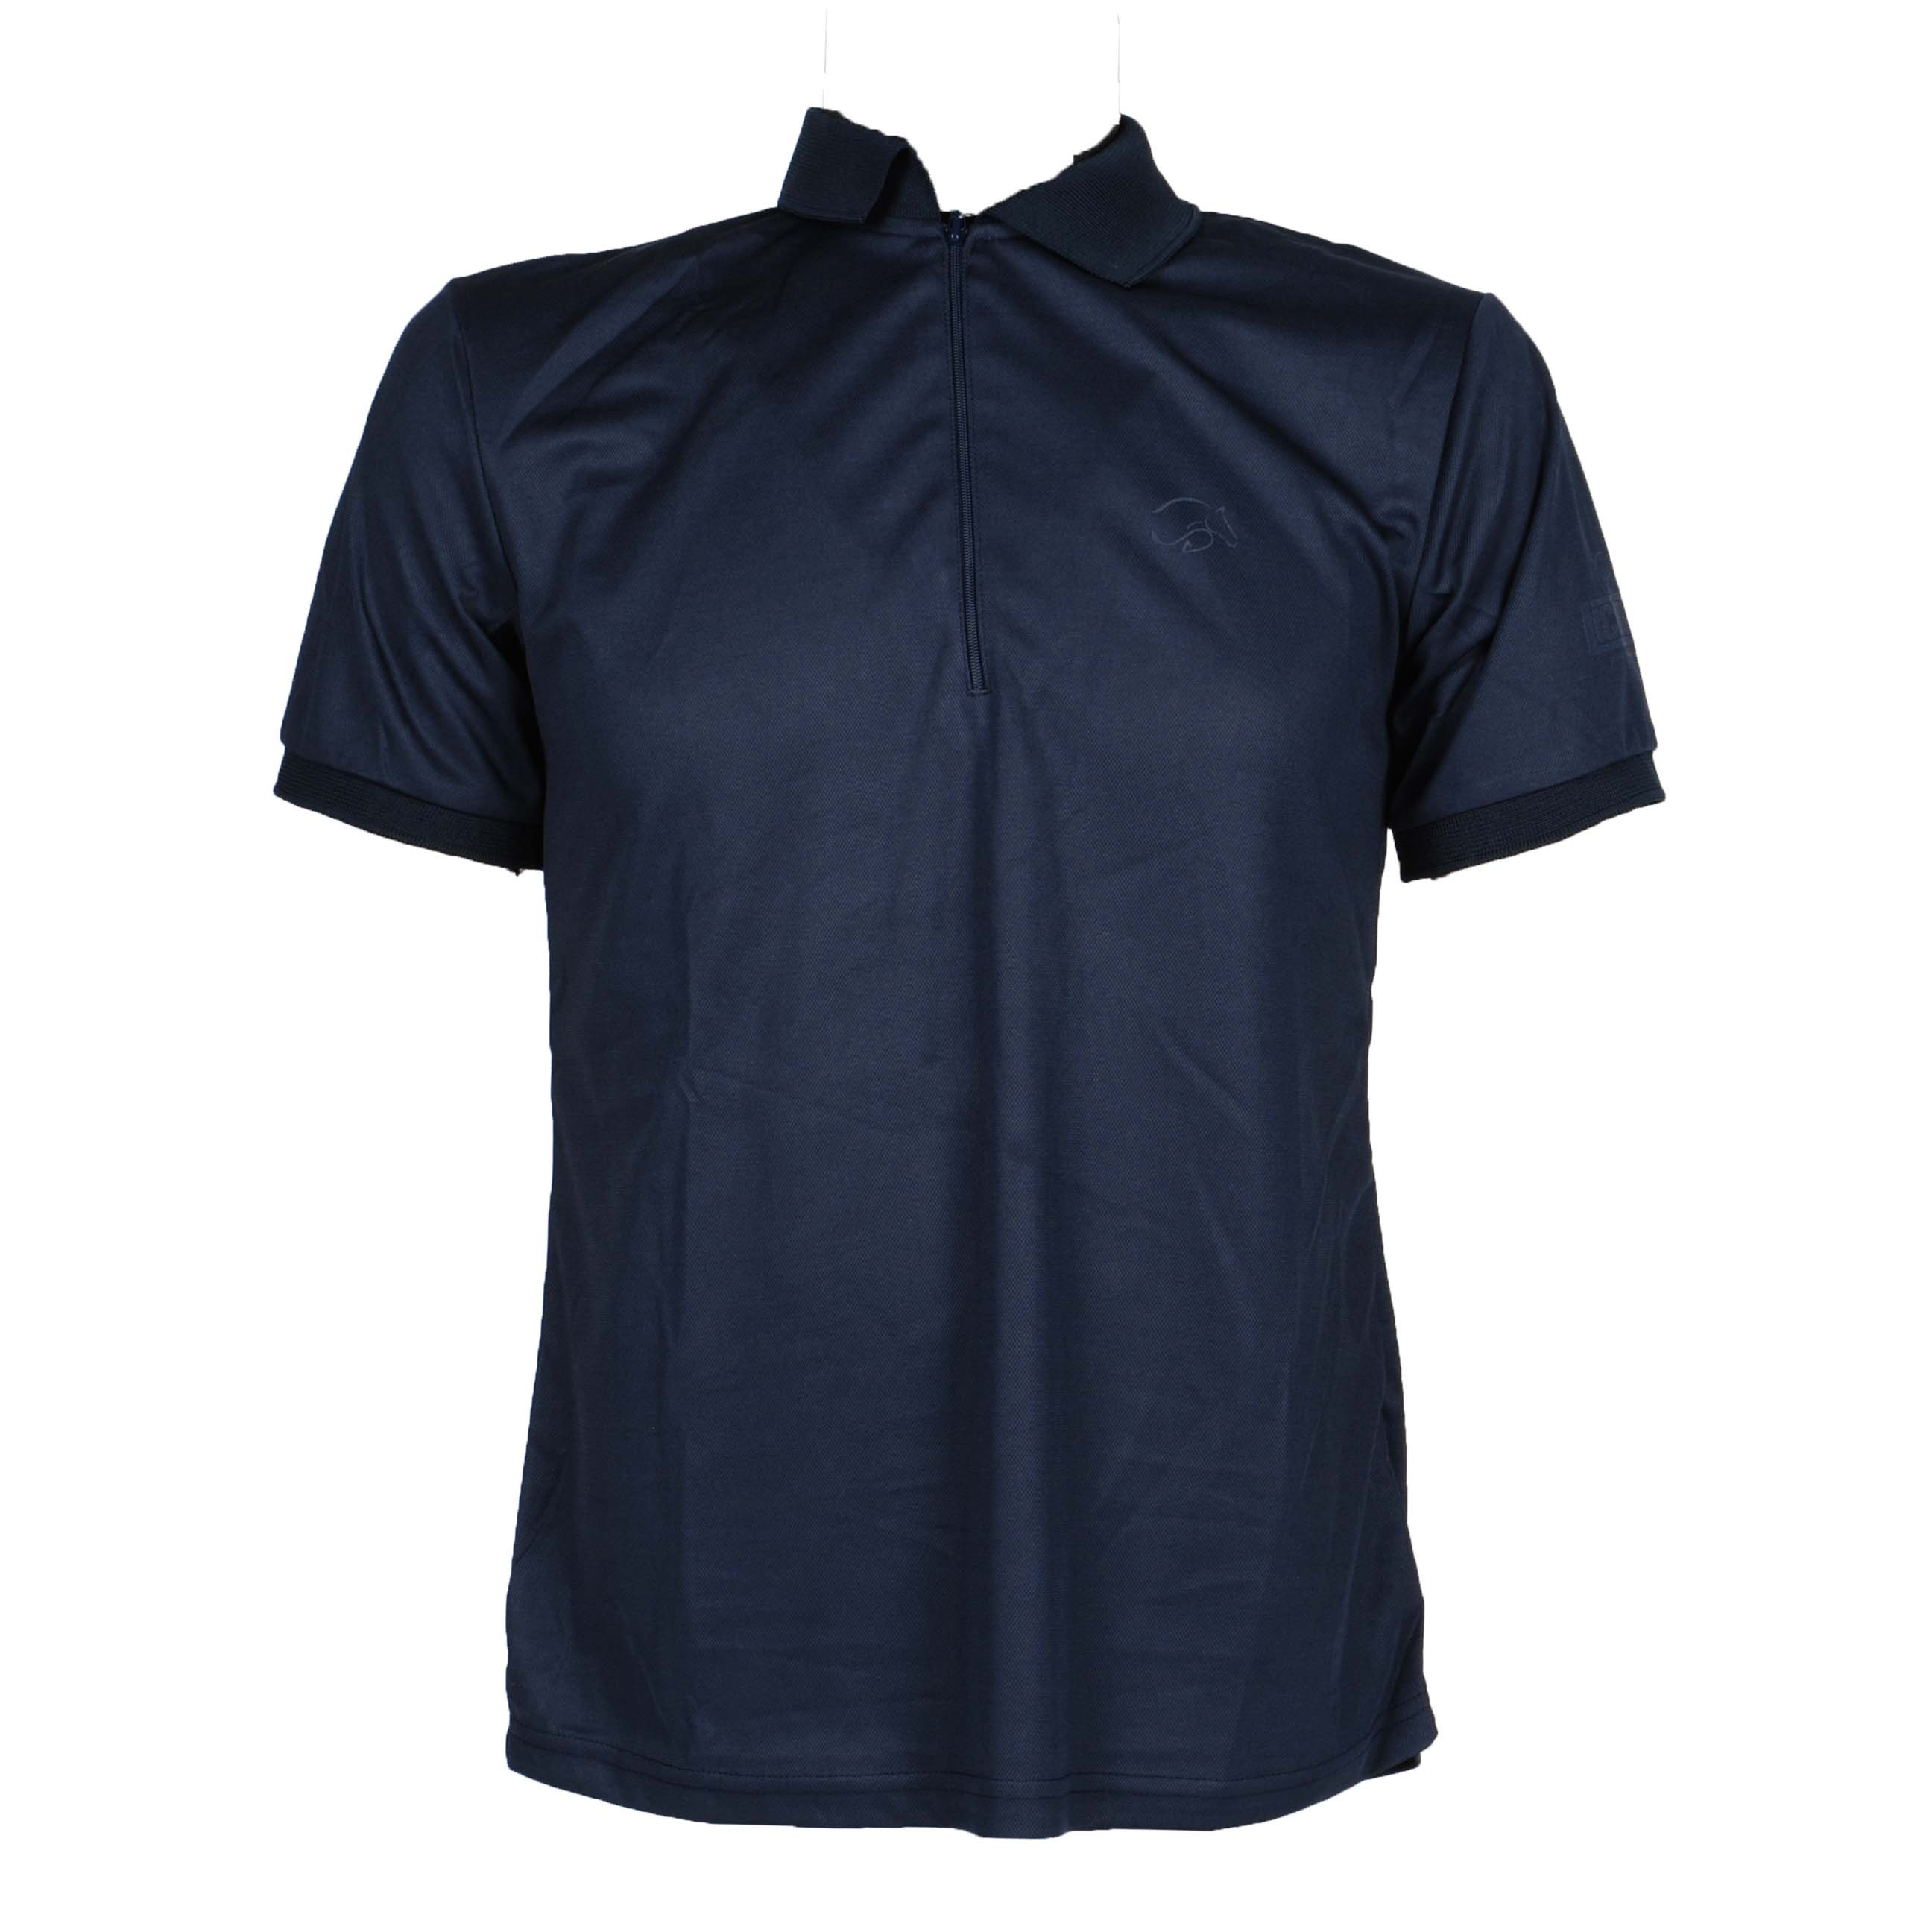 Harrys Horse polo Liciano heren donkerblauw maat:l